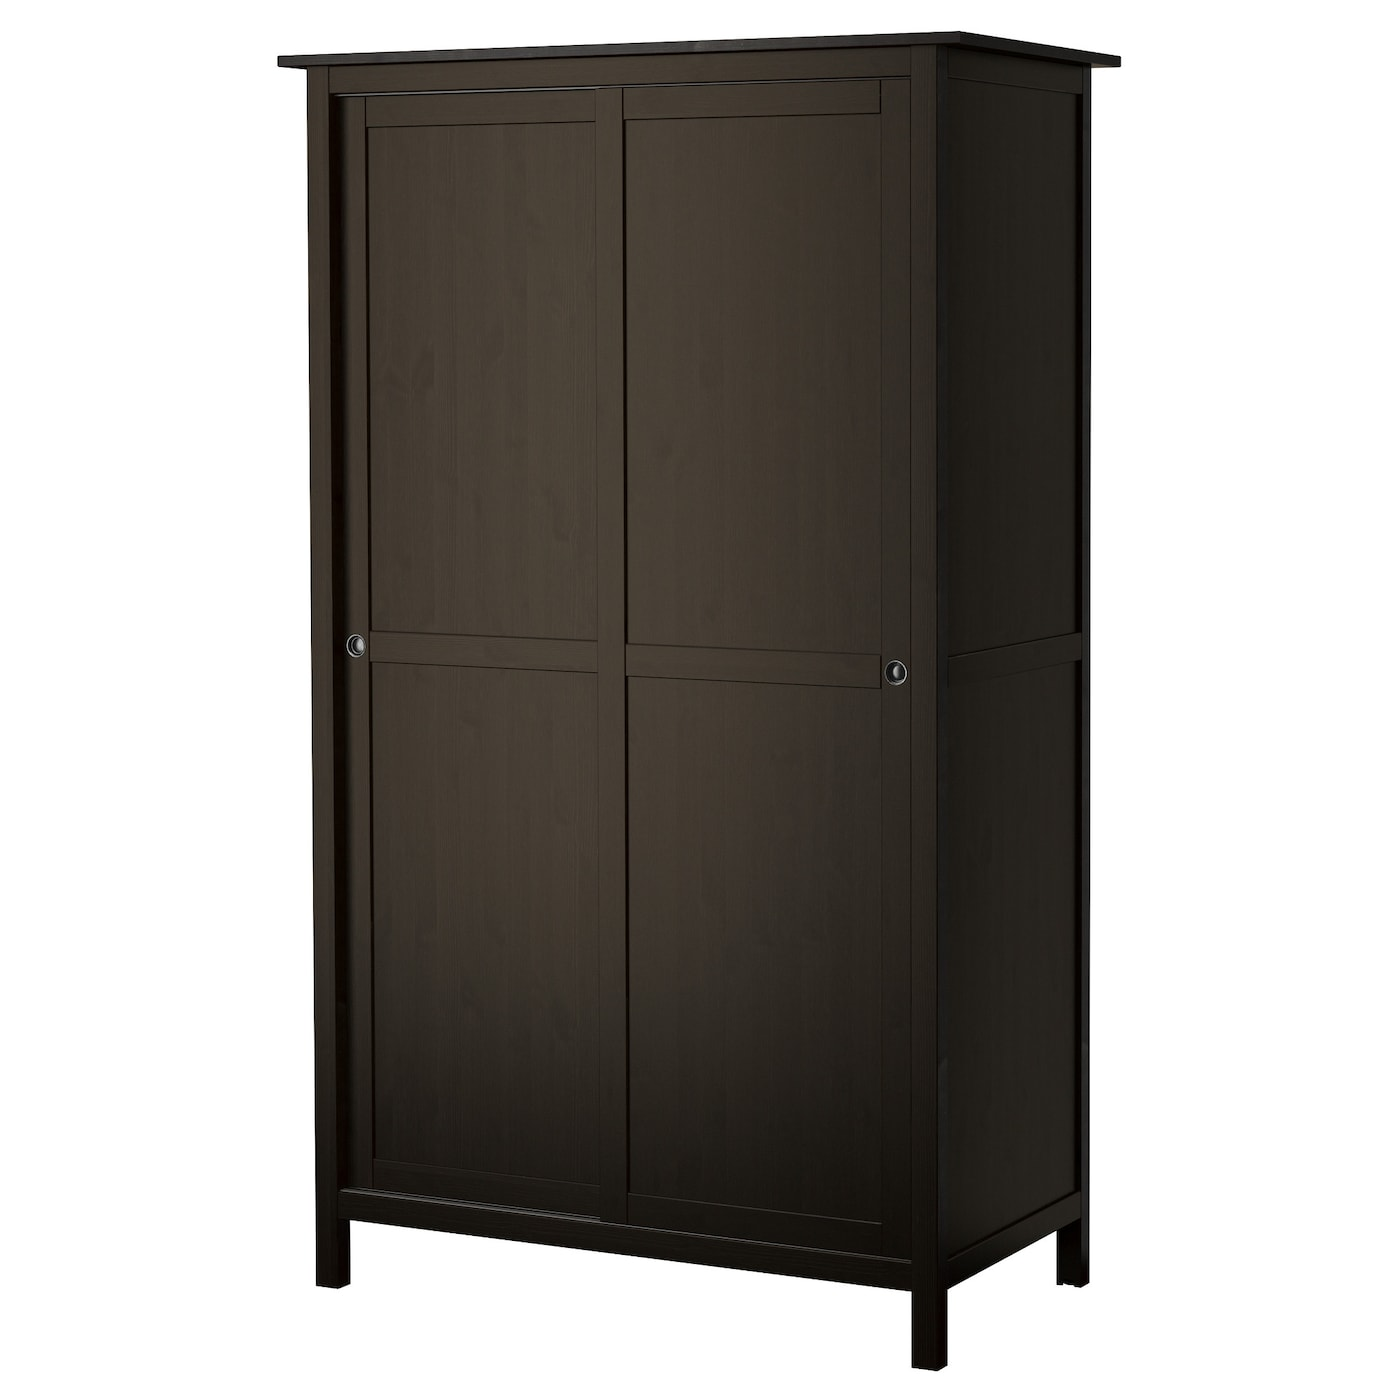 hemnes armoire 2 portes coulissantes brun noir 120x197 cm. Black Bedroom Furniture Sets. Home Design Ideas